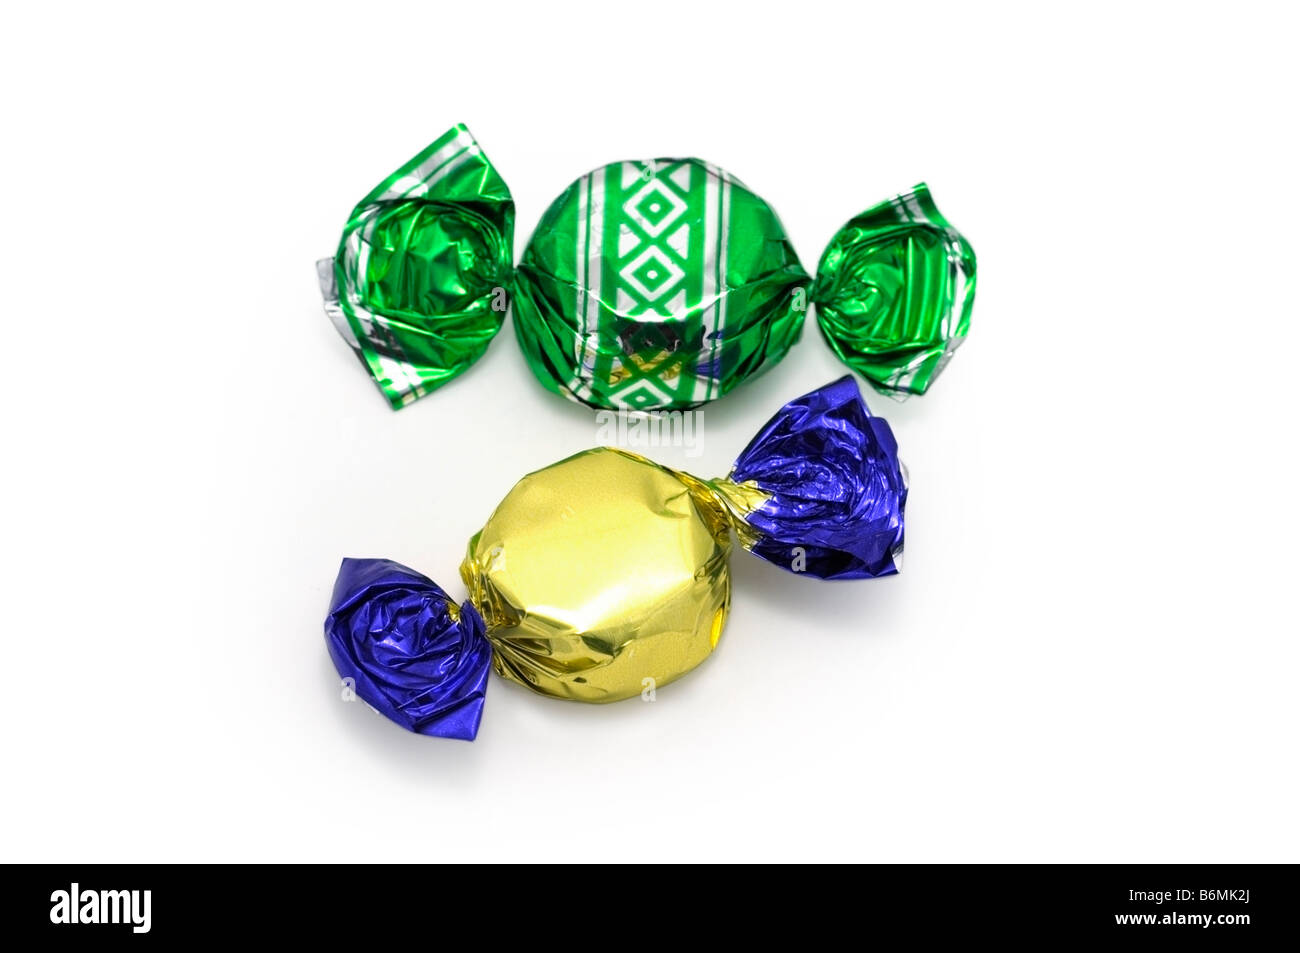 Two Sweets (Candies) in Wrappers - Stock Image